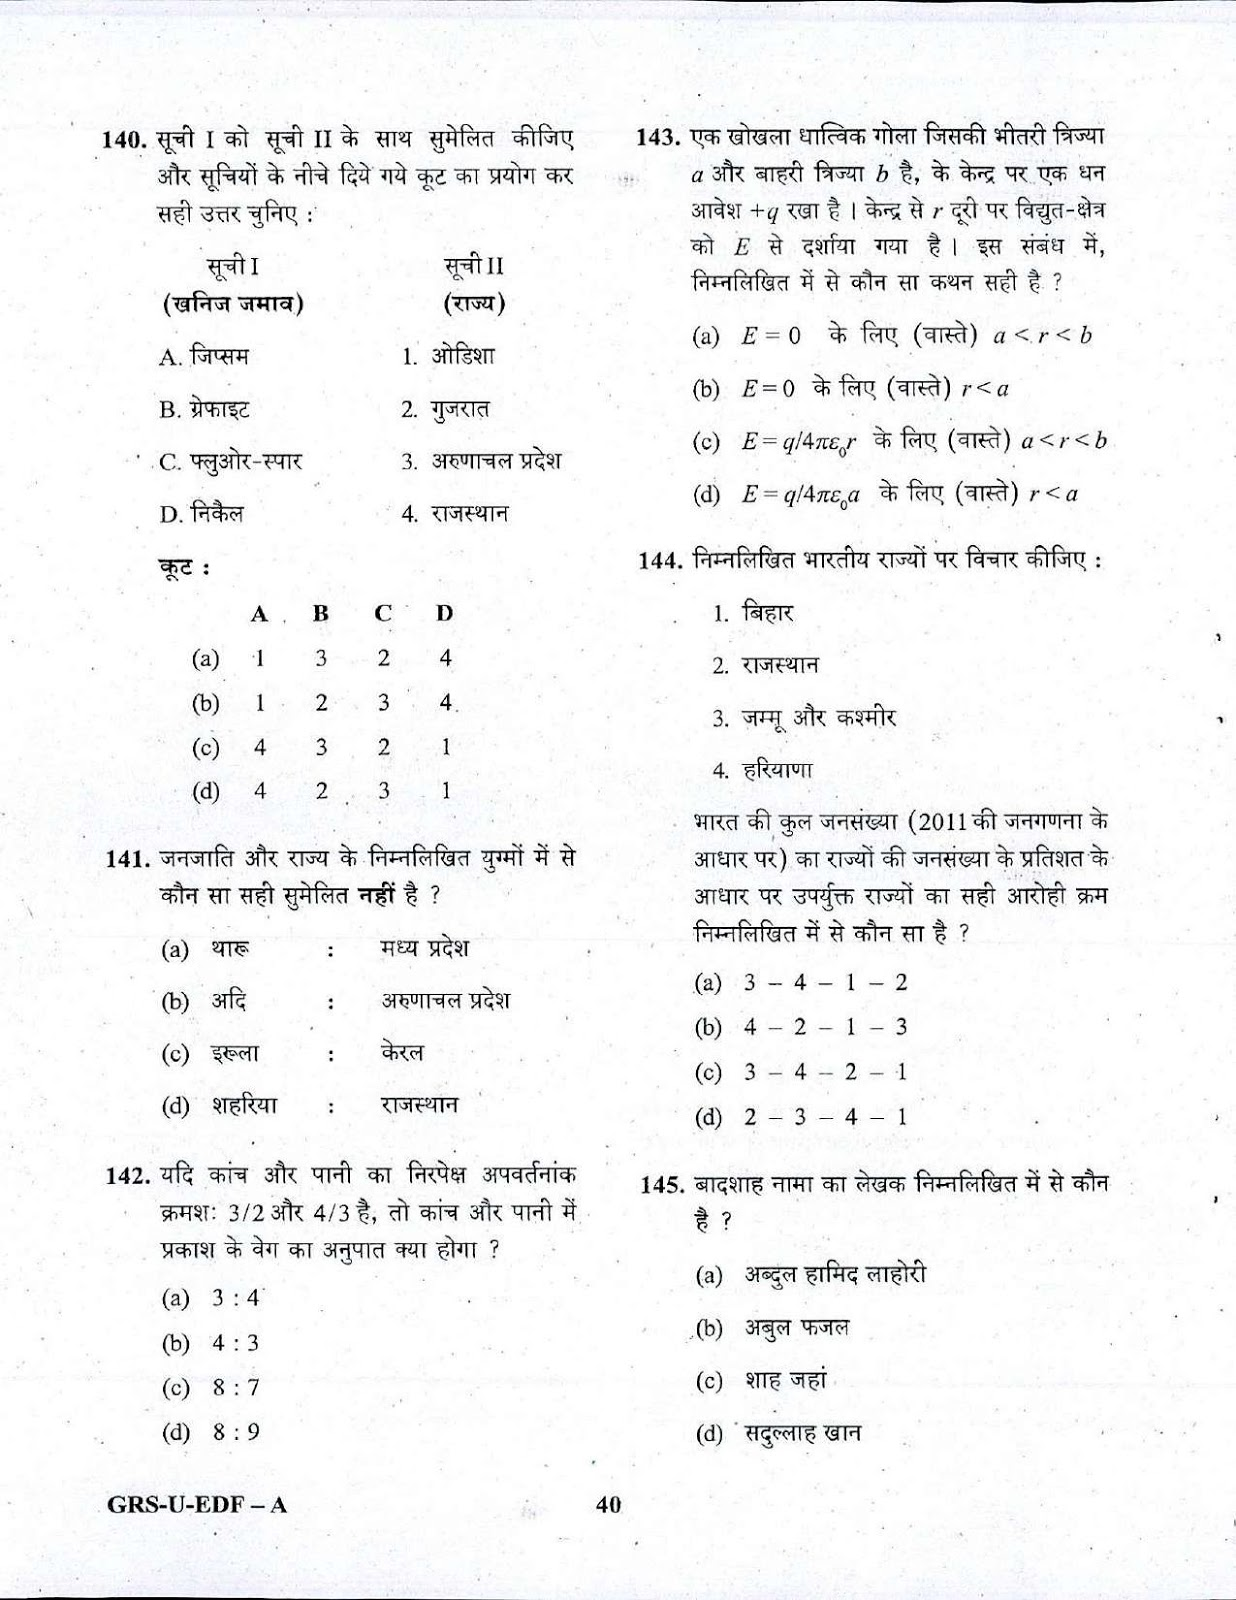 NDA 1 2017 General Ability Test question paper